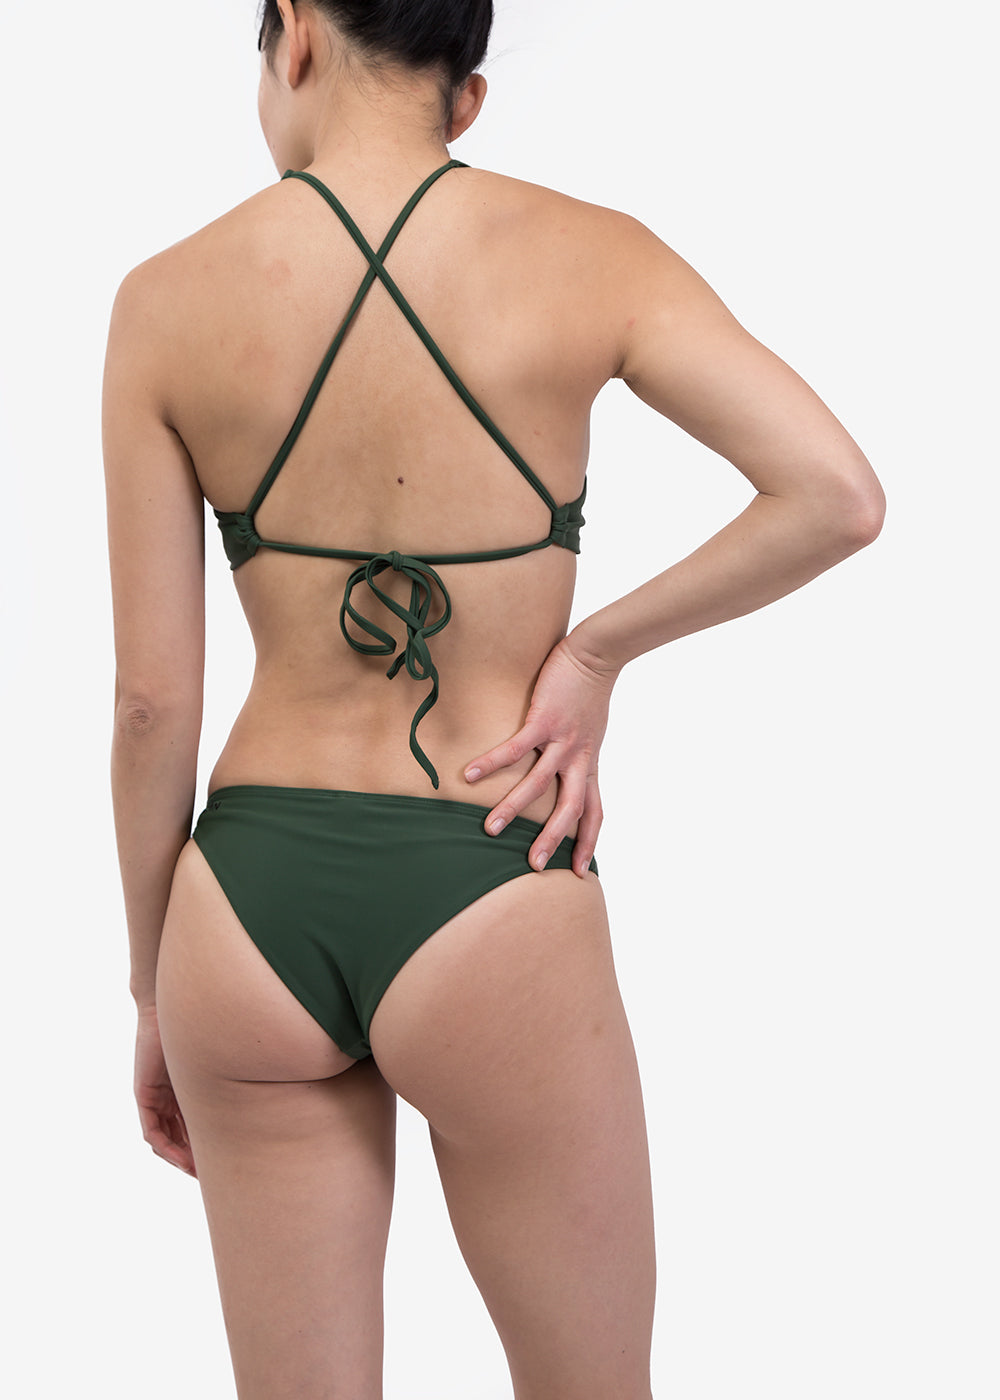 OCIN Olivine Classic Swim Bottom — Shop sustainable fashion and slow fashion at New Classics Studios